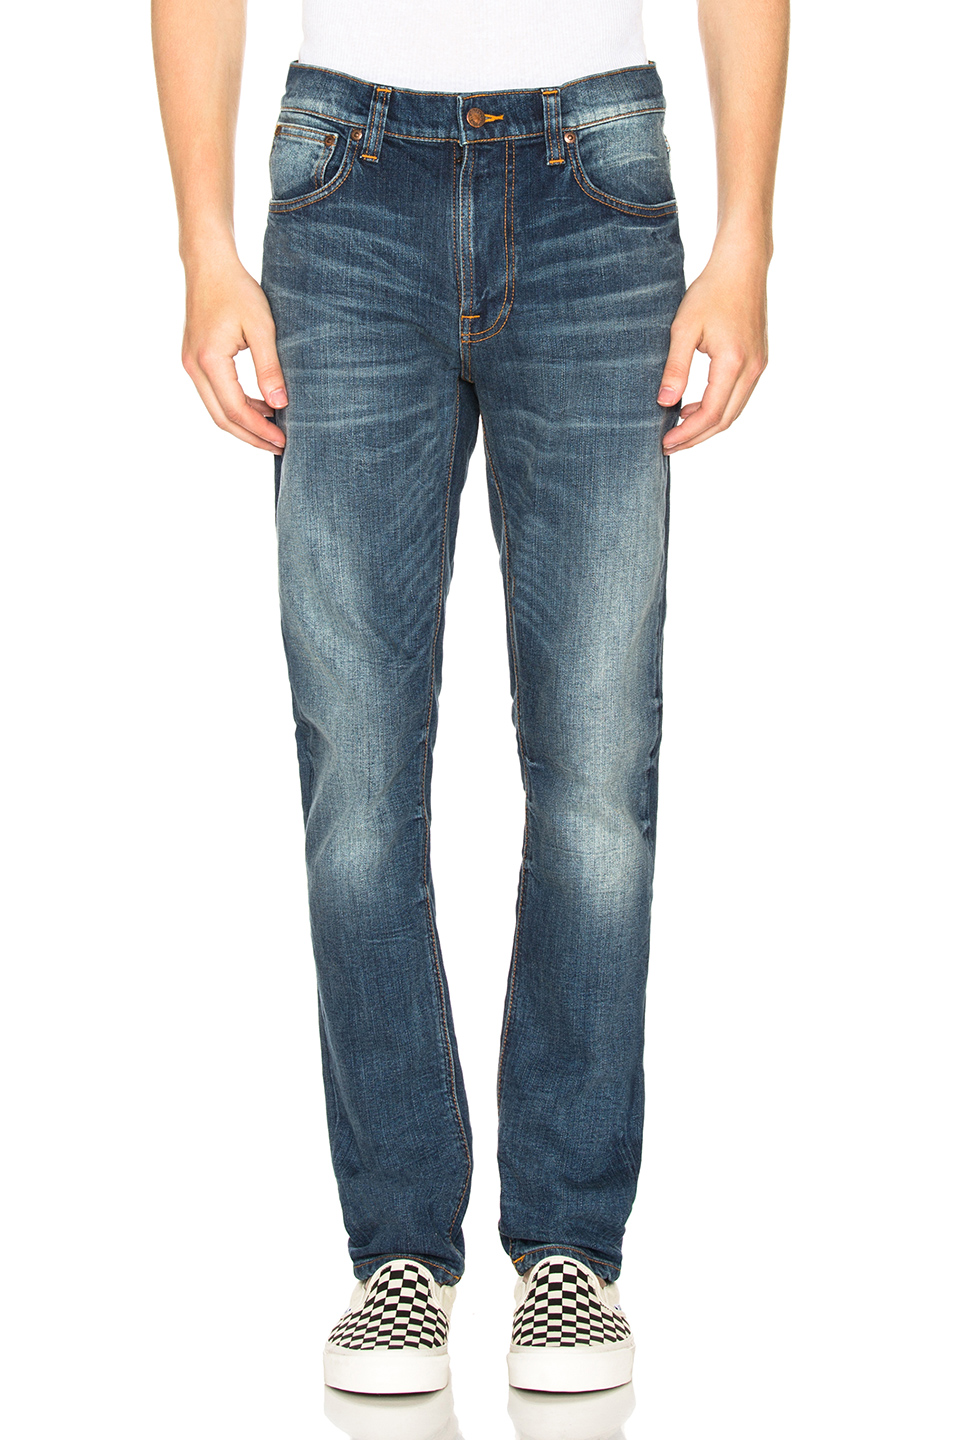 4801d8f4556 Buy Original Nudie Jeans Lean Dean at Indonesia | BOBOBOBO